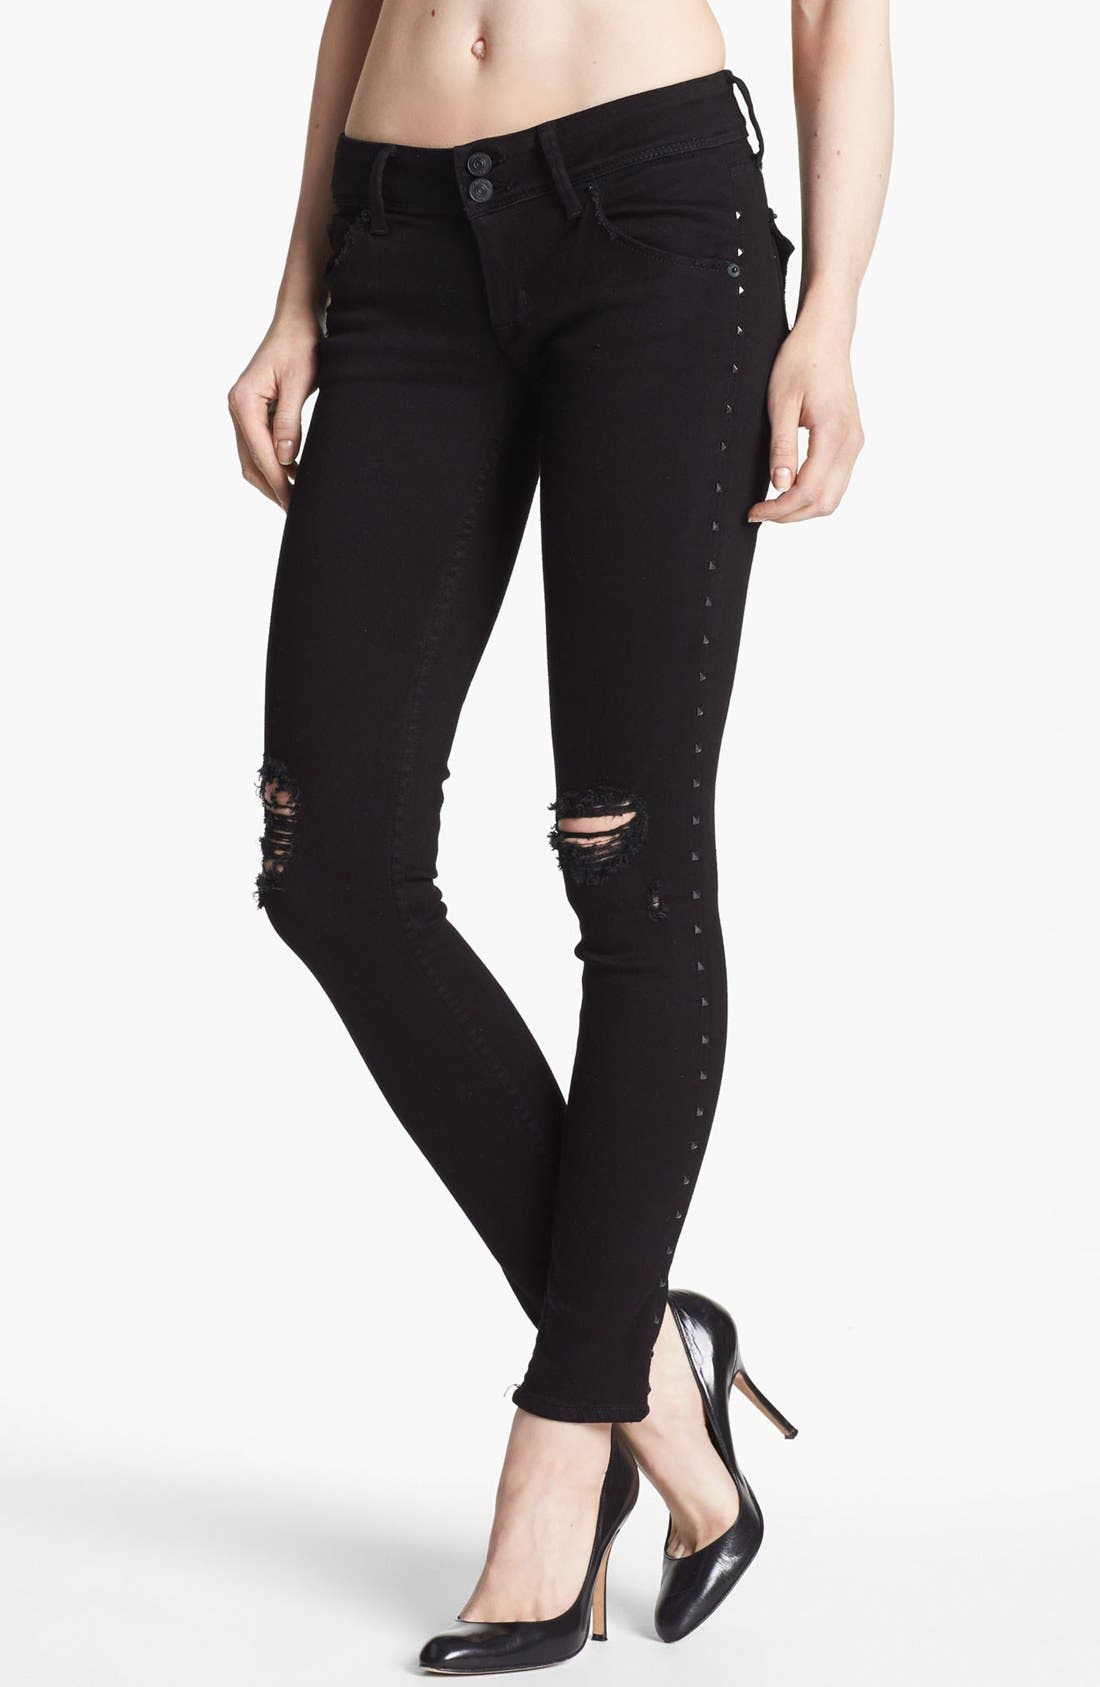 HUDSON JEANS 'Collin' Skinny Jeans, Main, color, 001